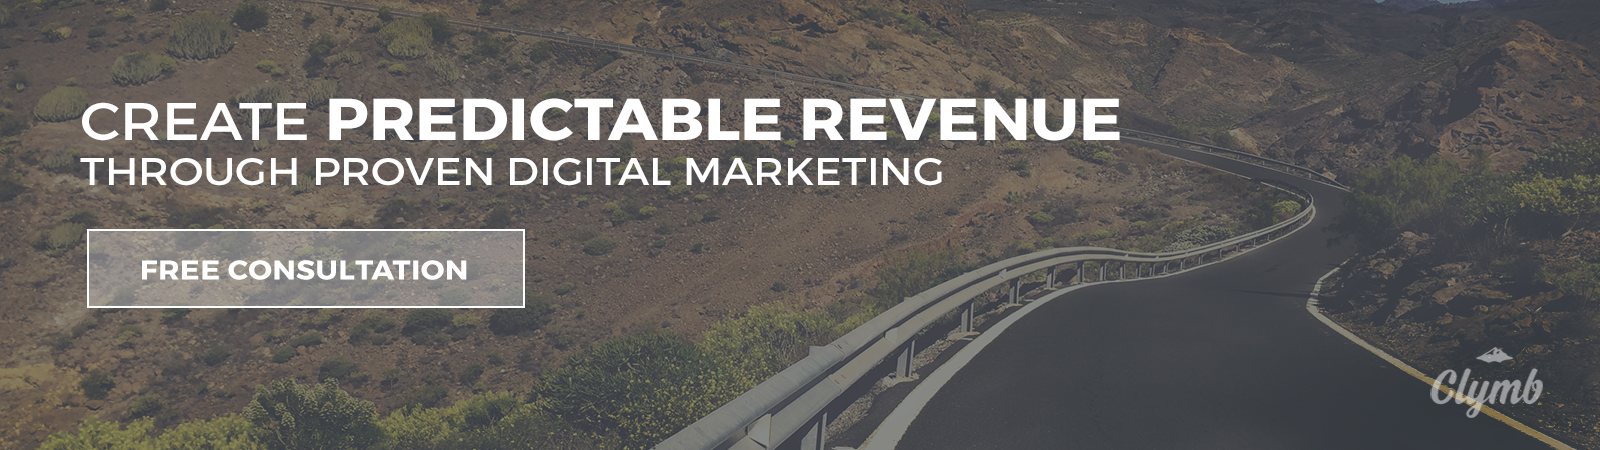 create predictable revenue through proven digital marketing with clymb marketing